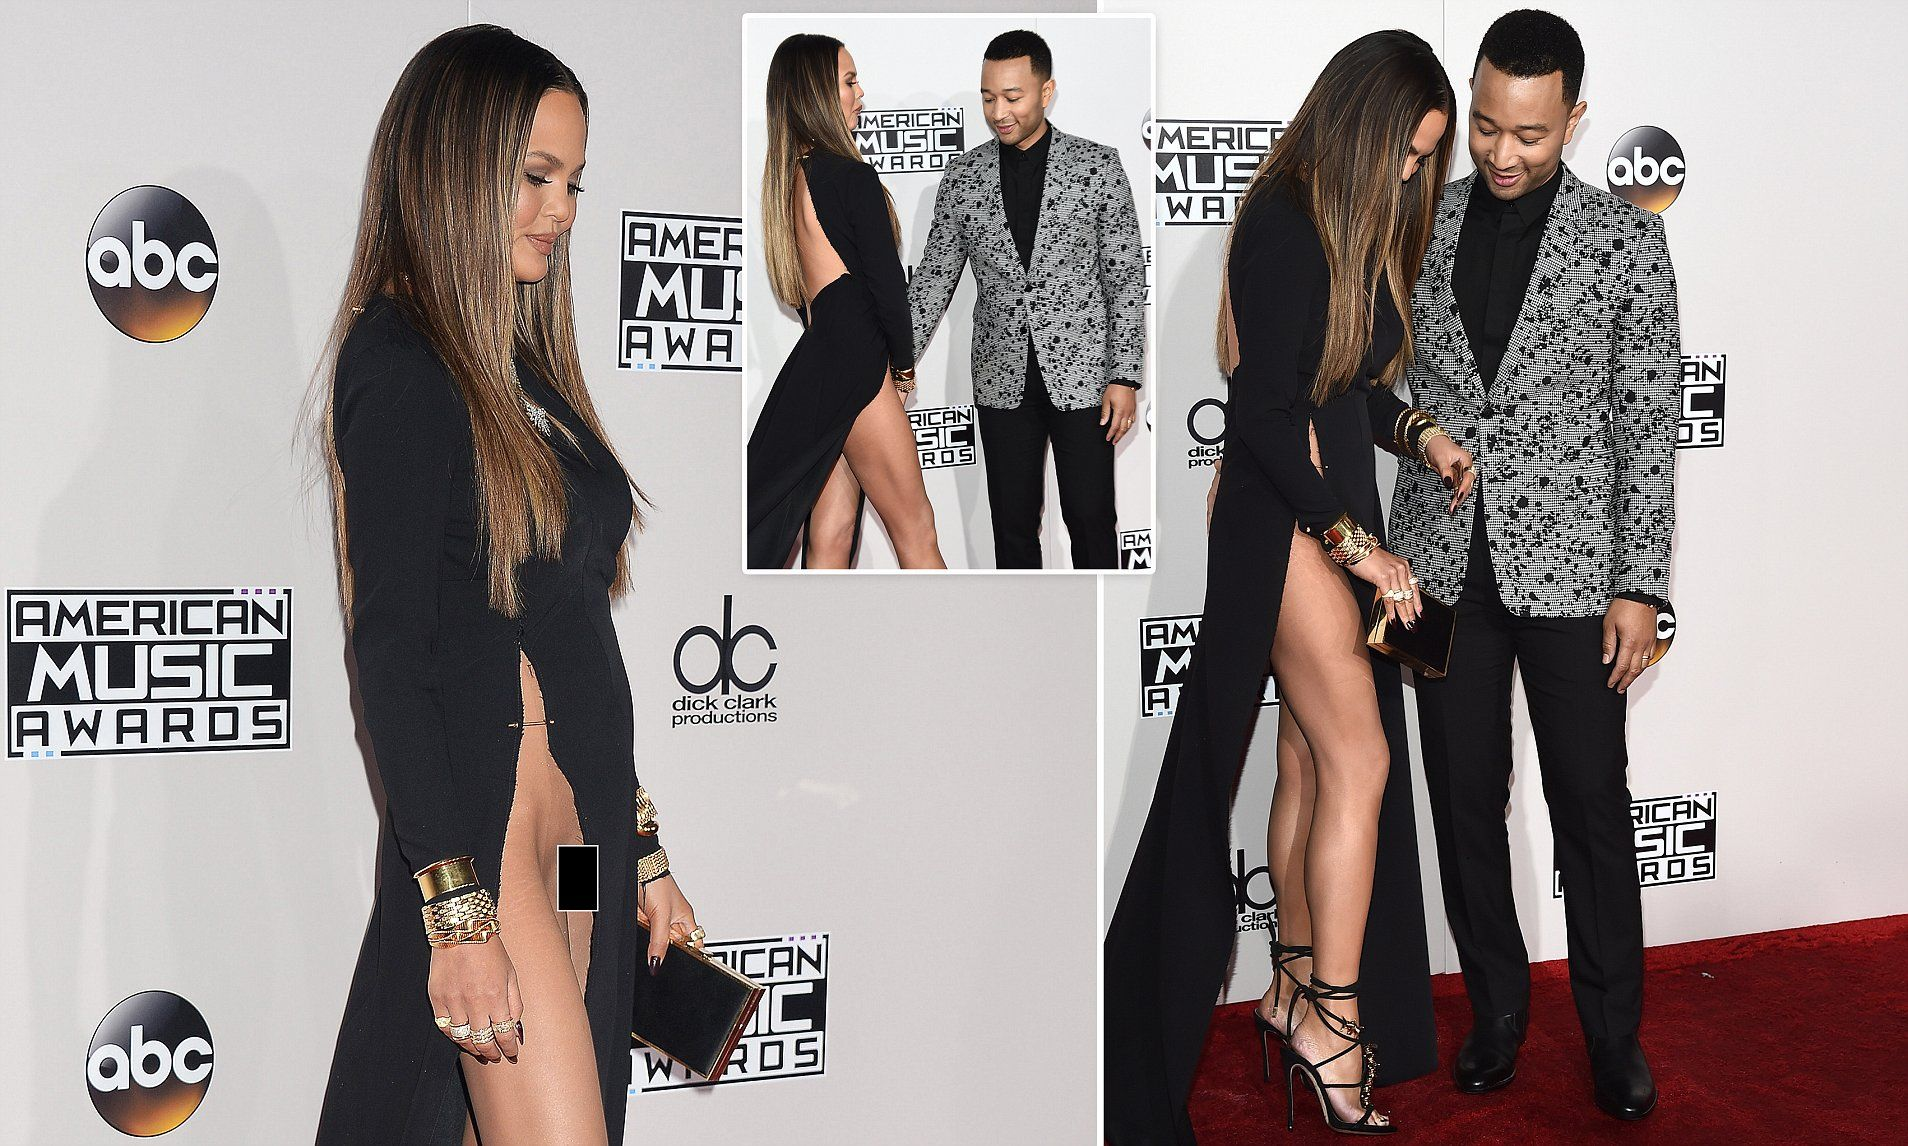 Chrissy Teigen won the award for the most revealing dress at the American  Music Awards on